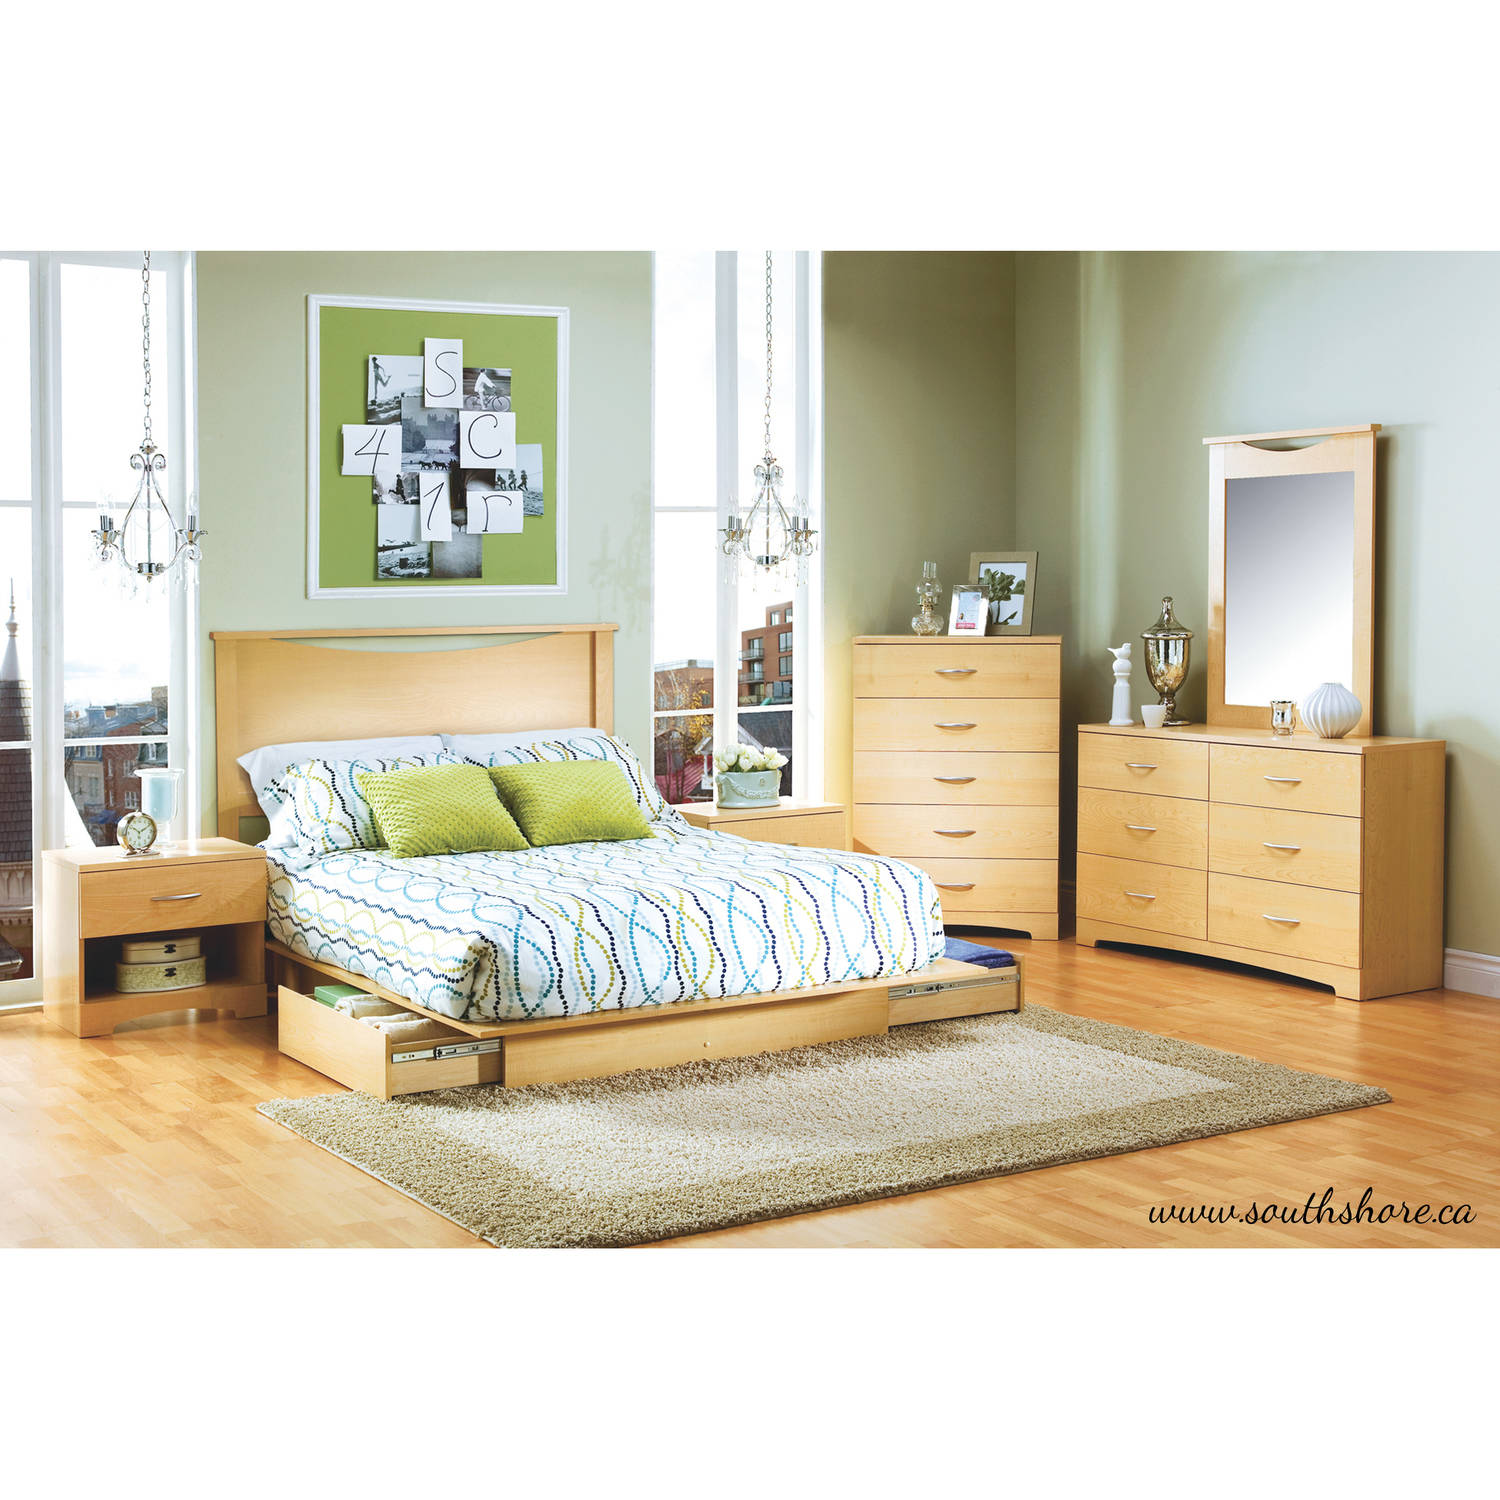 ah advantages stunning urbangreen beds solid drawers noble platform with withdrawers furniture graceful wood bedroom york bed new thompson queen by storage drawer